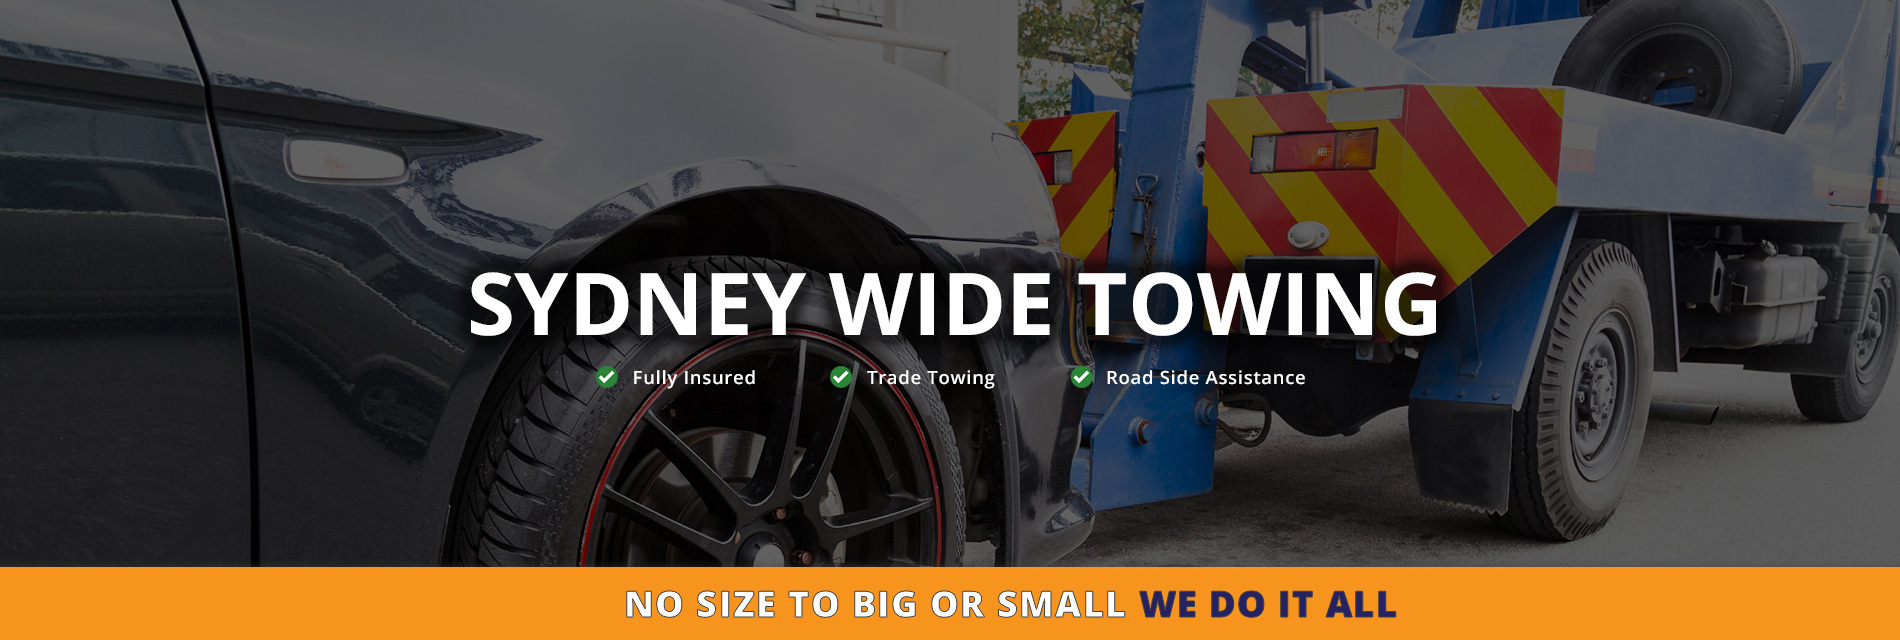 Sydney Wide Towing Services